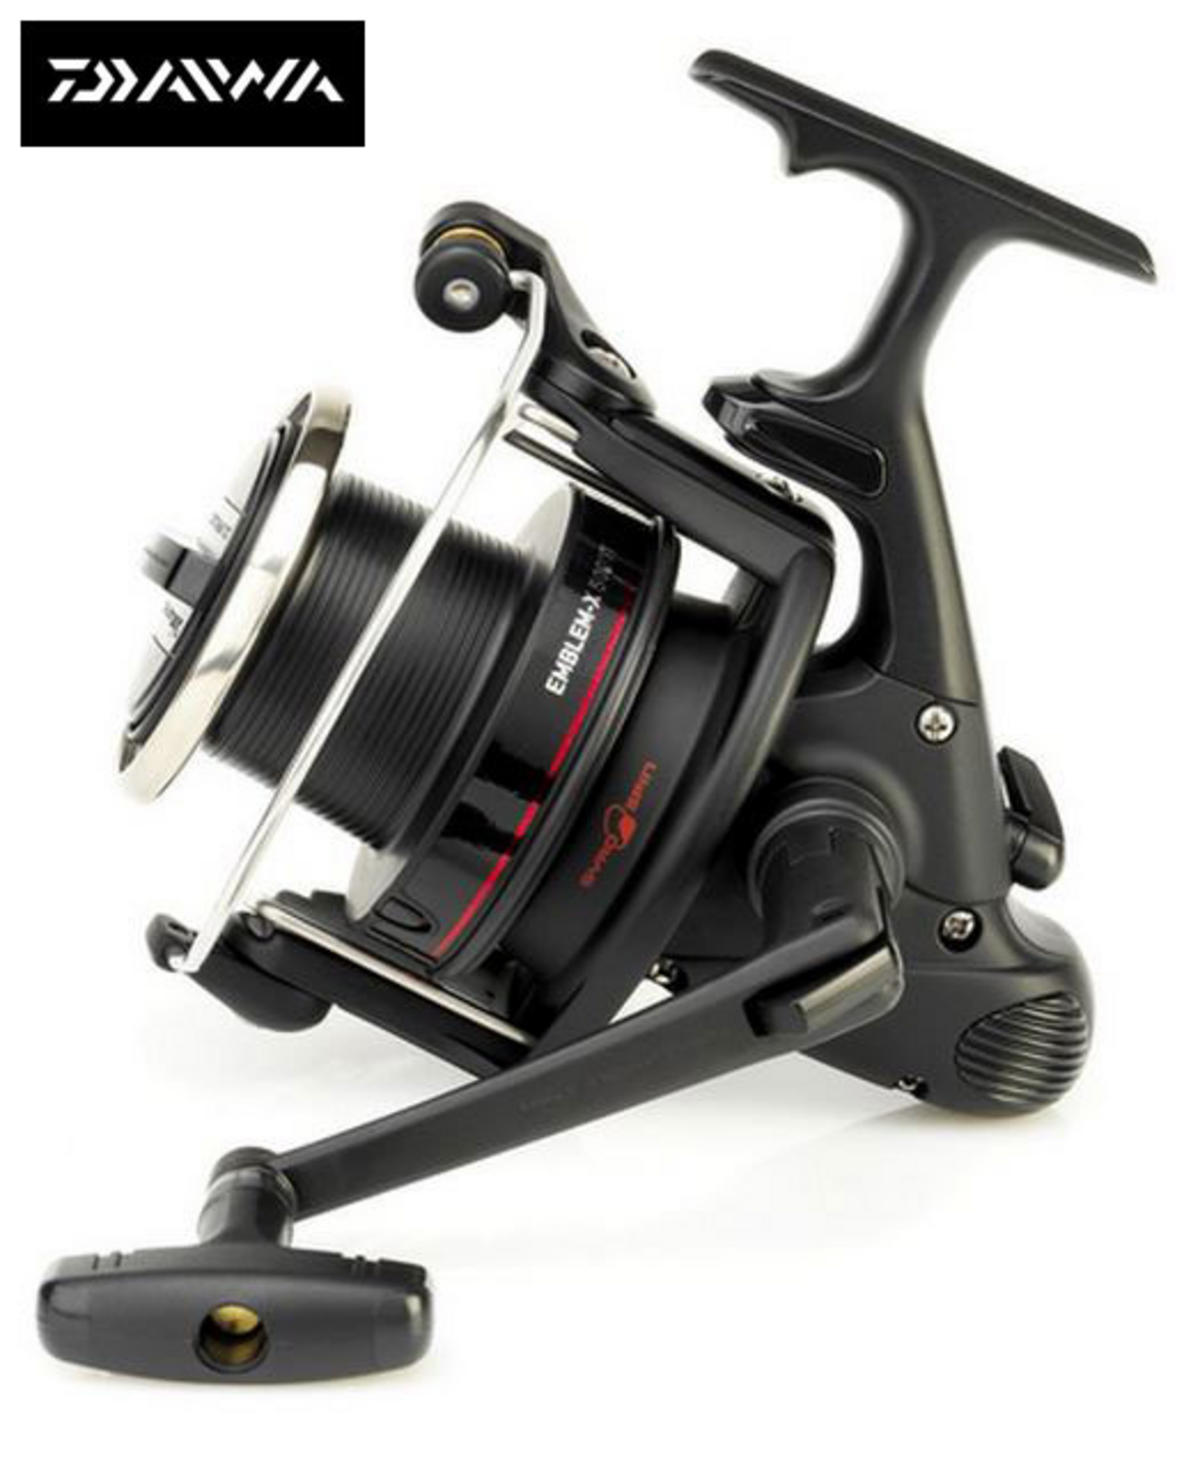 NEW DAIWA EMBLEM XT 5000TB (BLACK SERIES) FISHING REEL Model No EMX5000TB